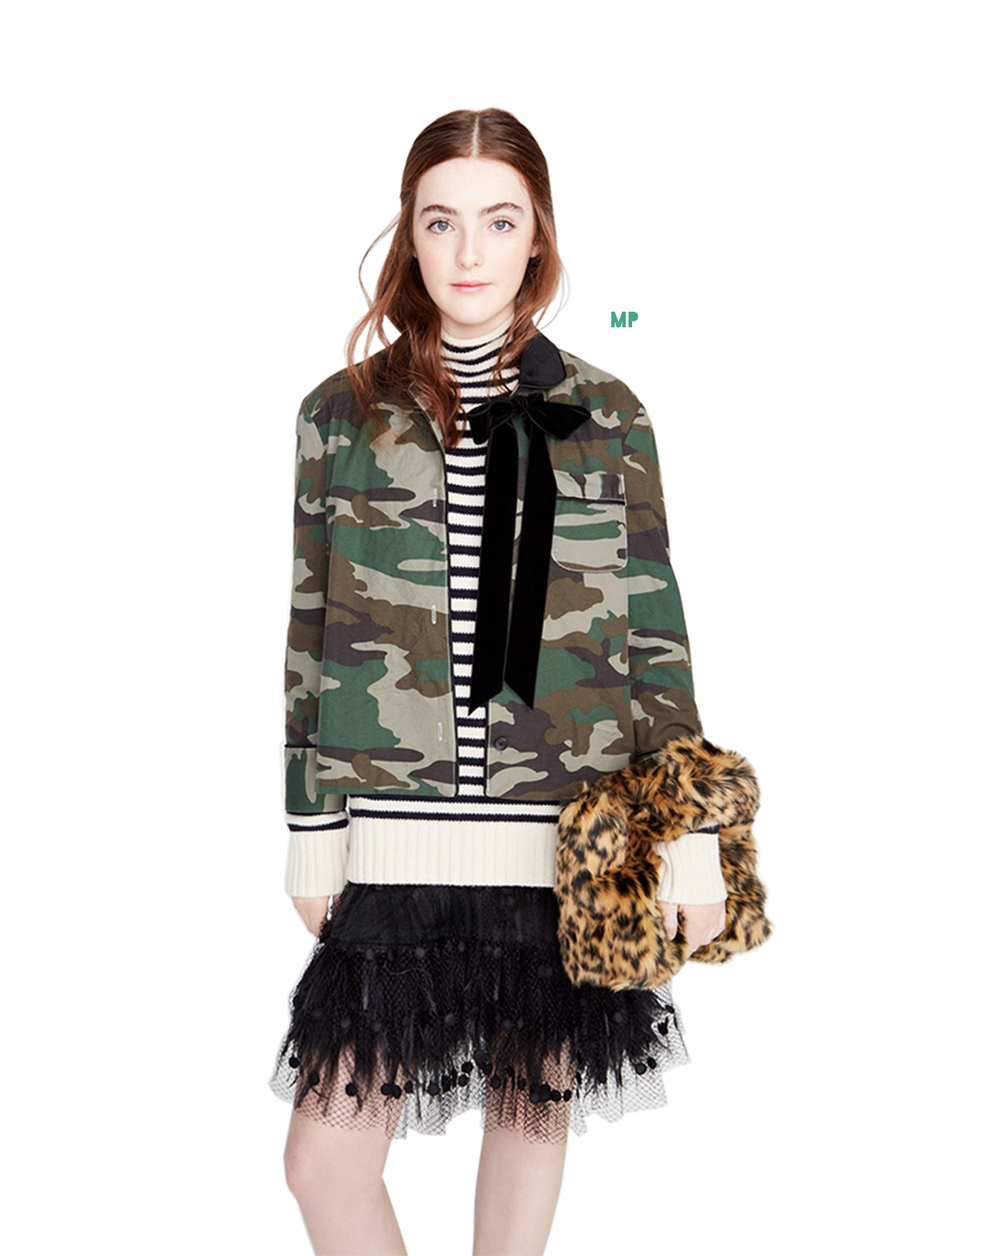 j.crew camo | @themissprints